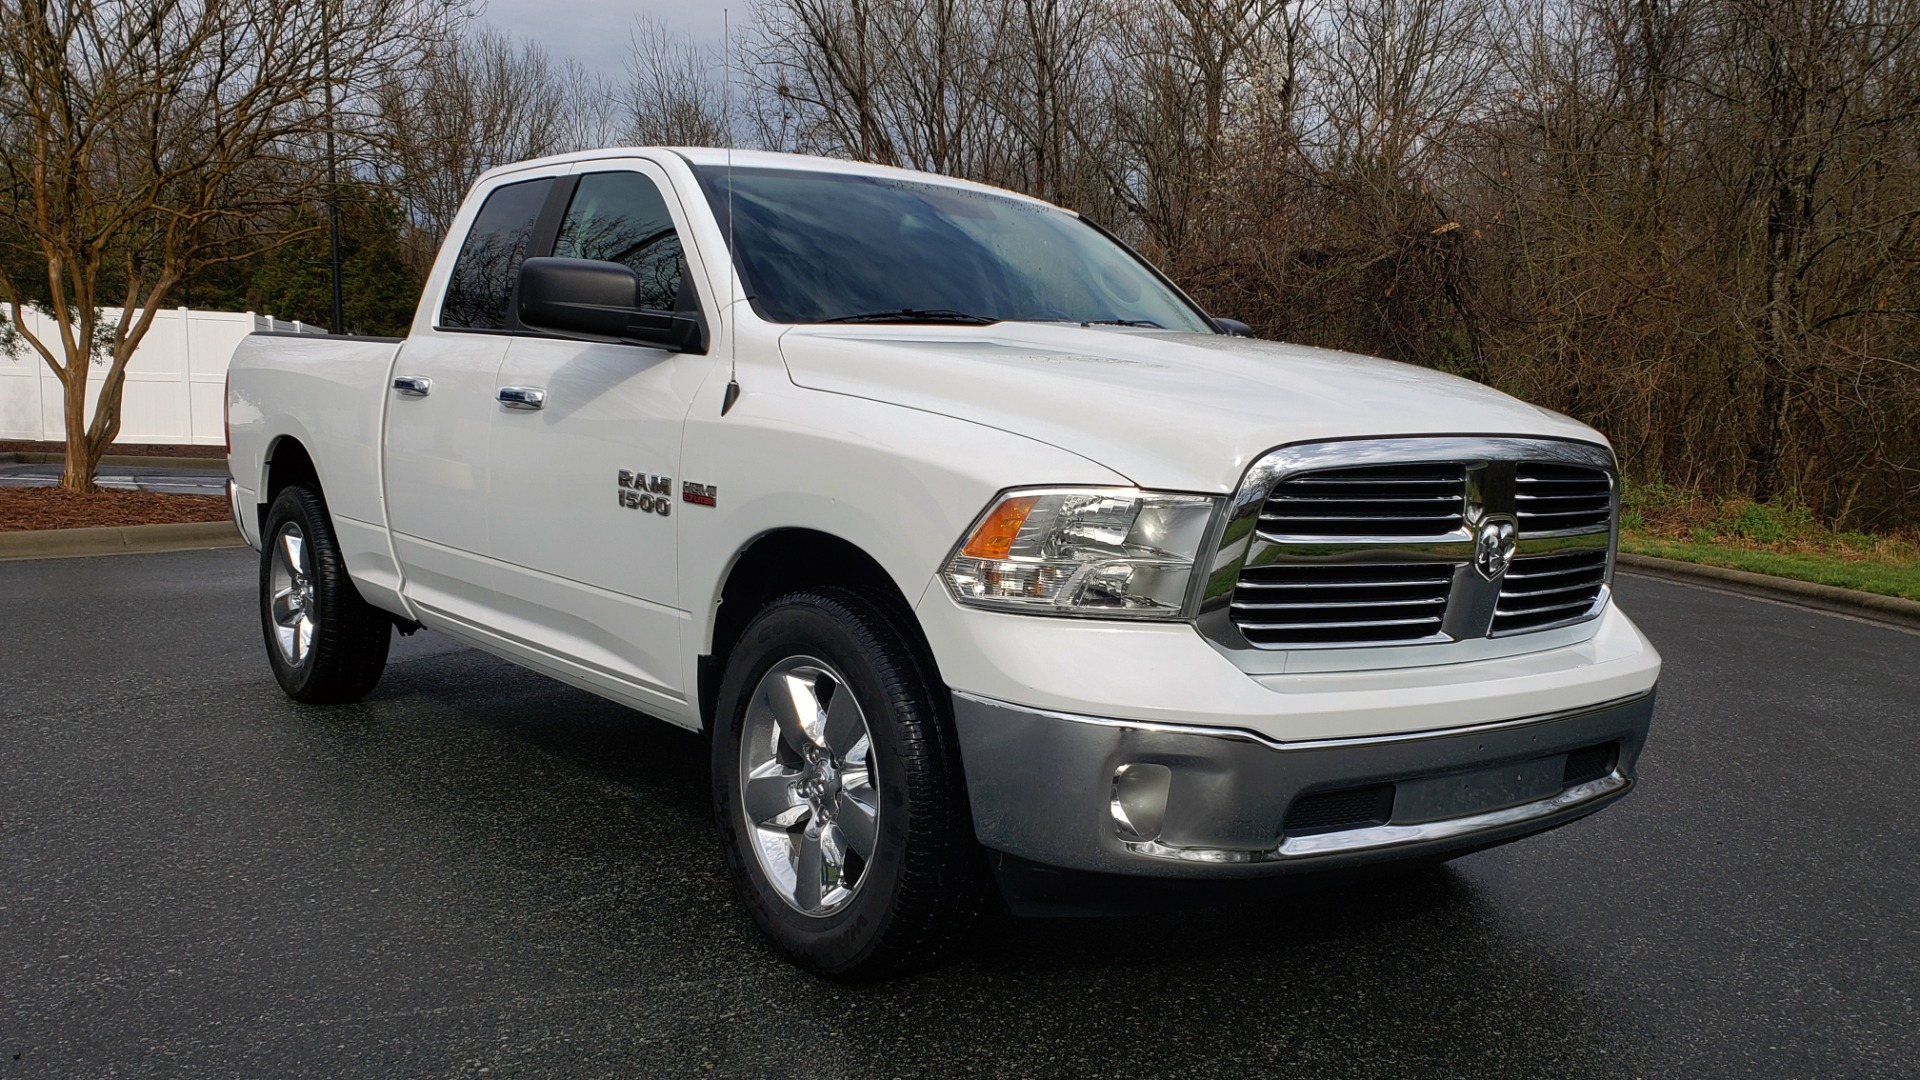 Used 2016 Ram 1500 BIG HORN QUAD CAB 4X4 / 5.7L HEMI V8 / 8-SPD AUTO for sale Sold at Formula Imports in Charlotte NC 28227 4